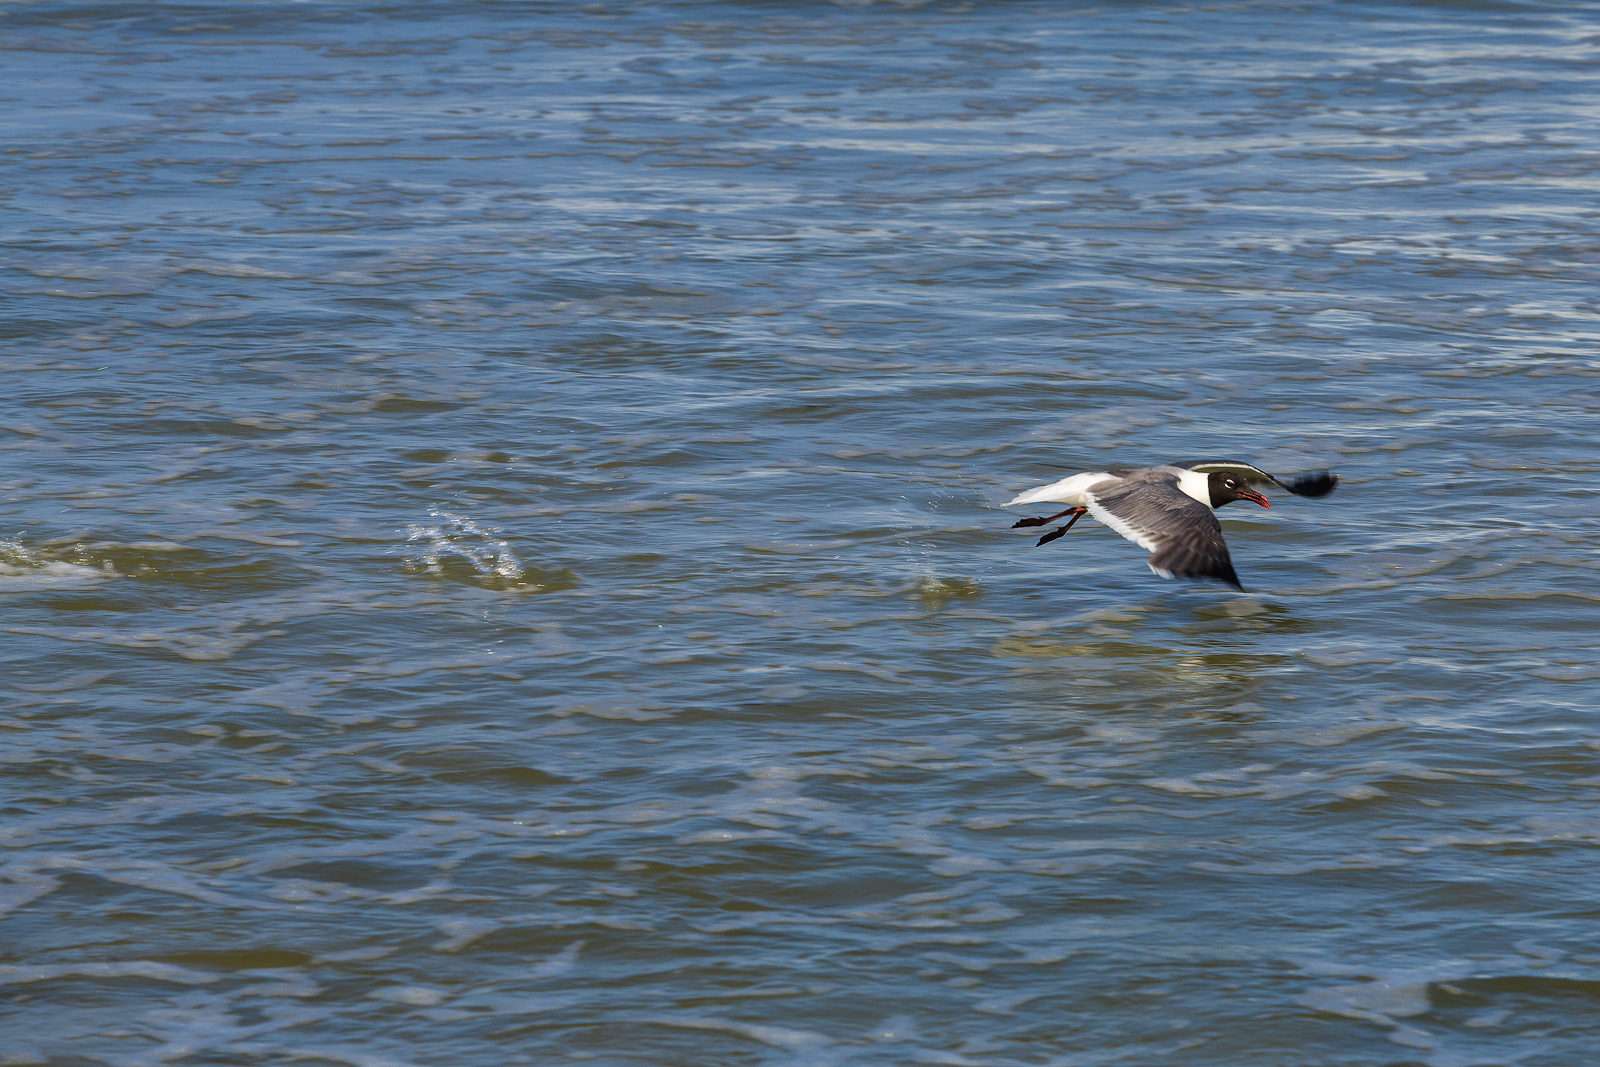 Laughing Gull About to Take Flight